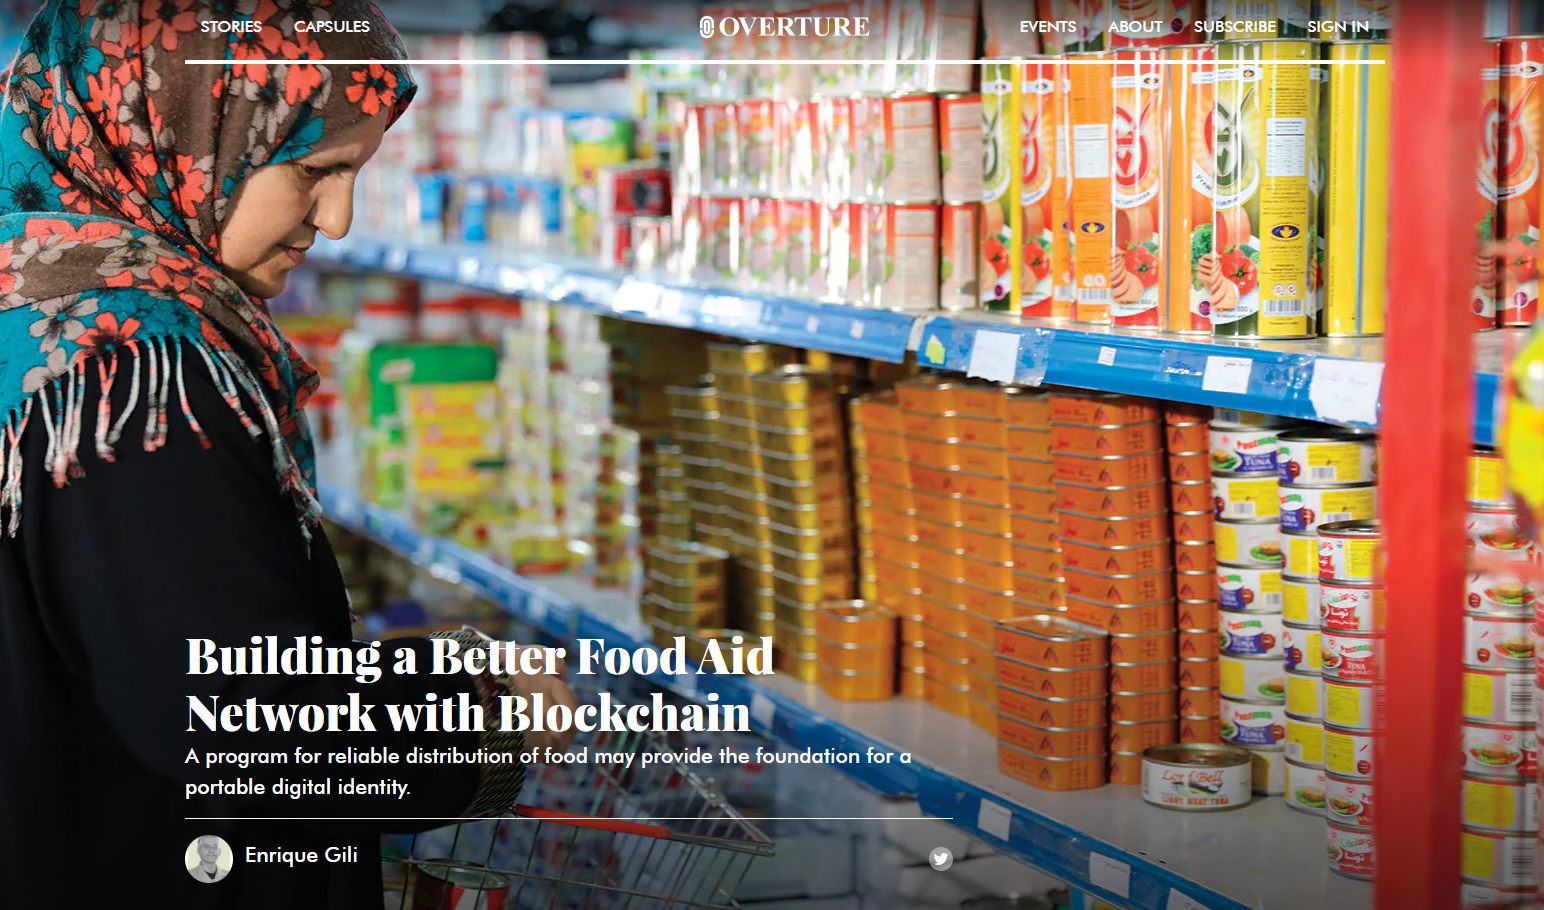 https://www.overtureglobal.io/story/building-a-better-food-aid-network-with-blockchain